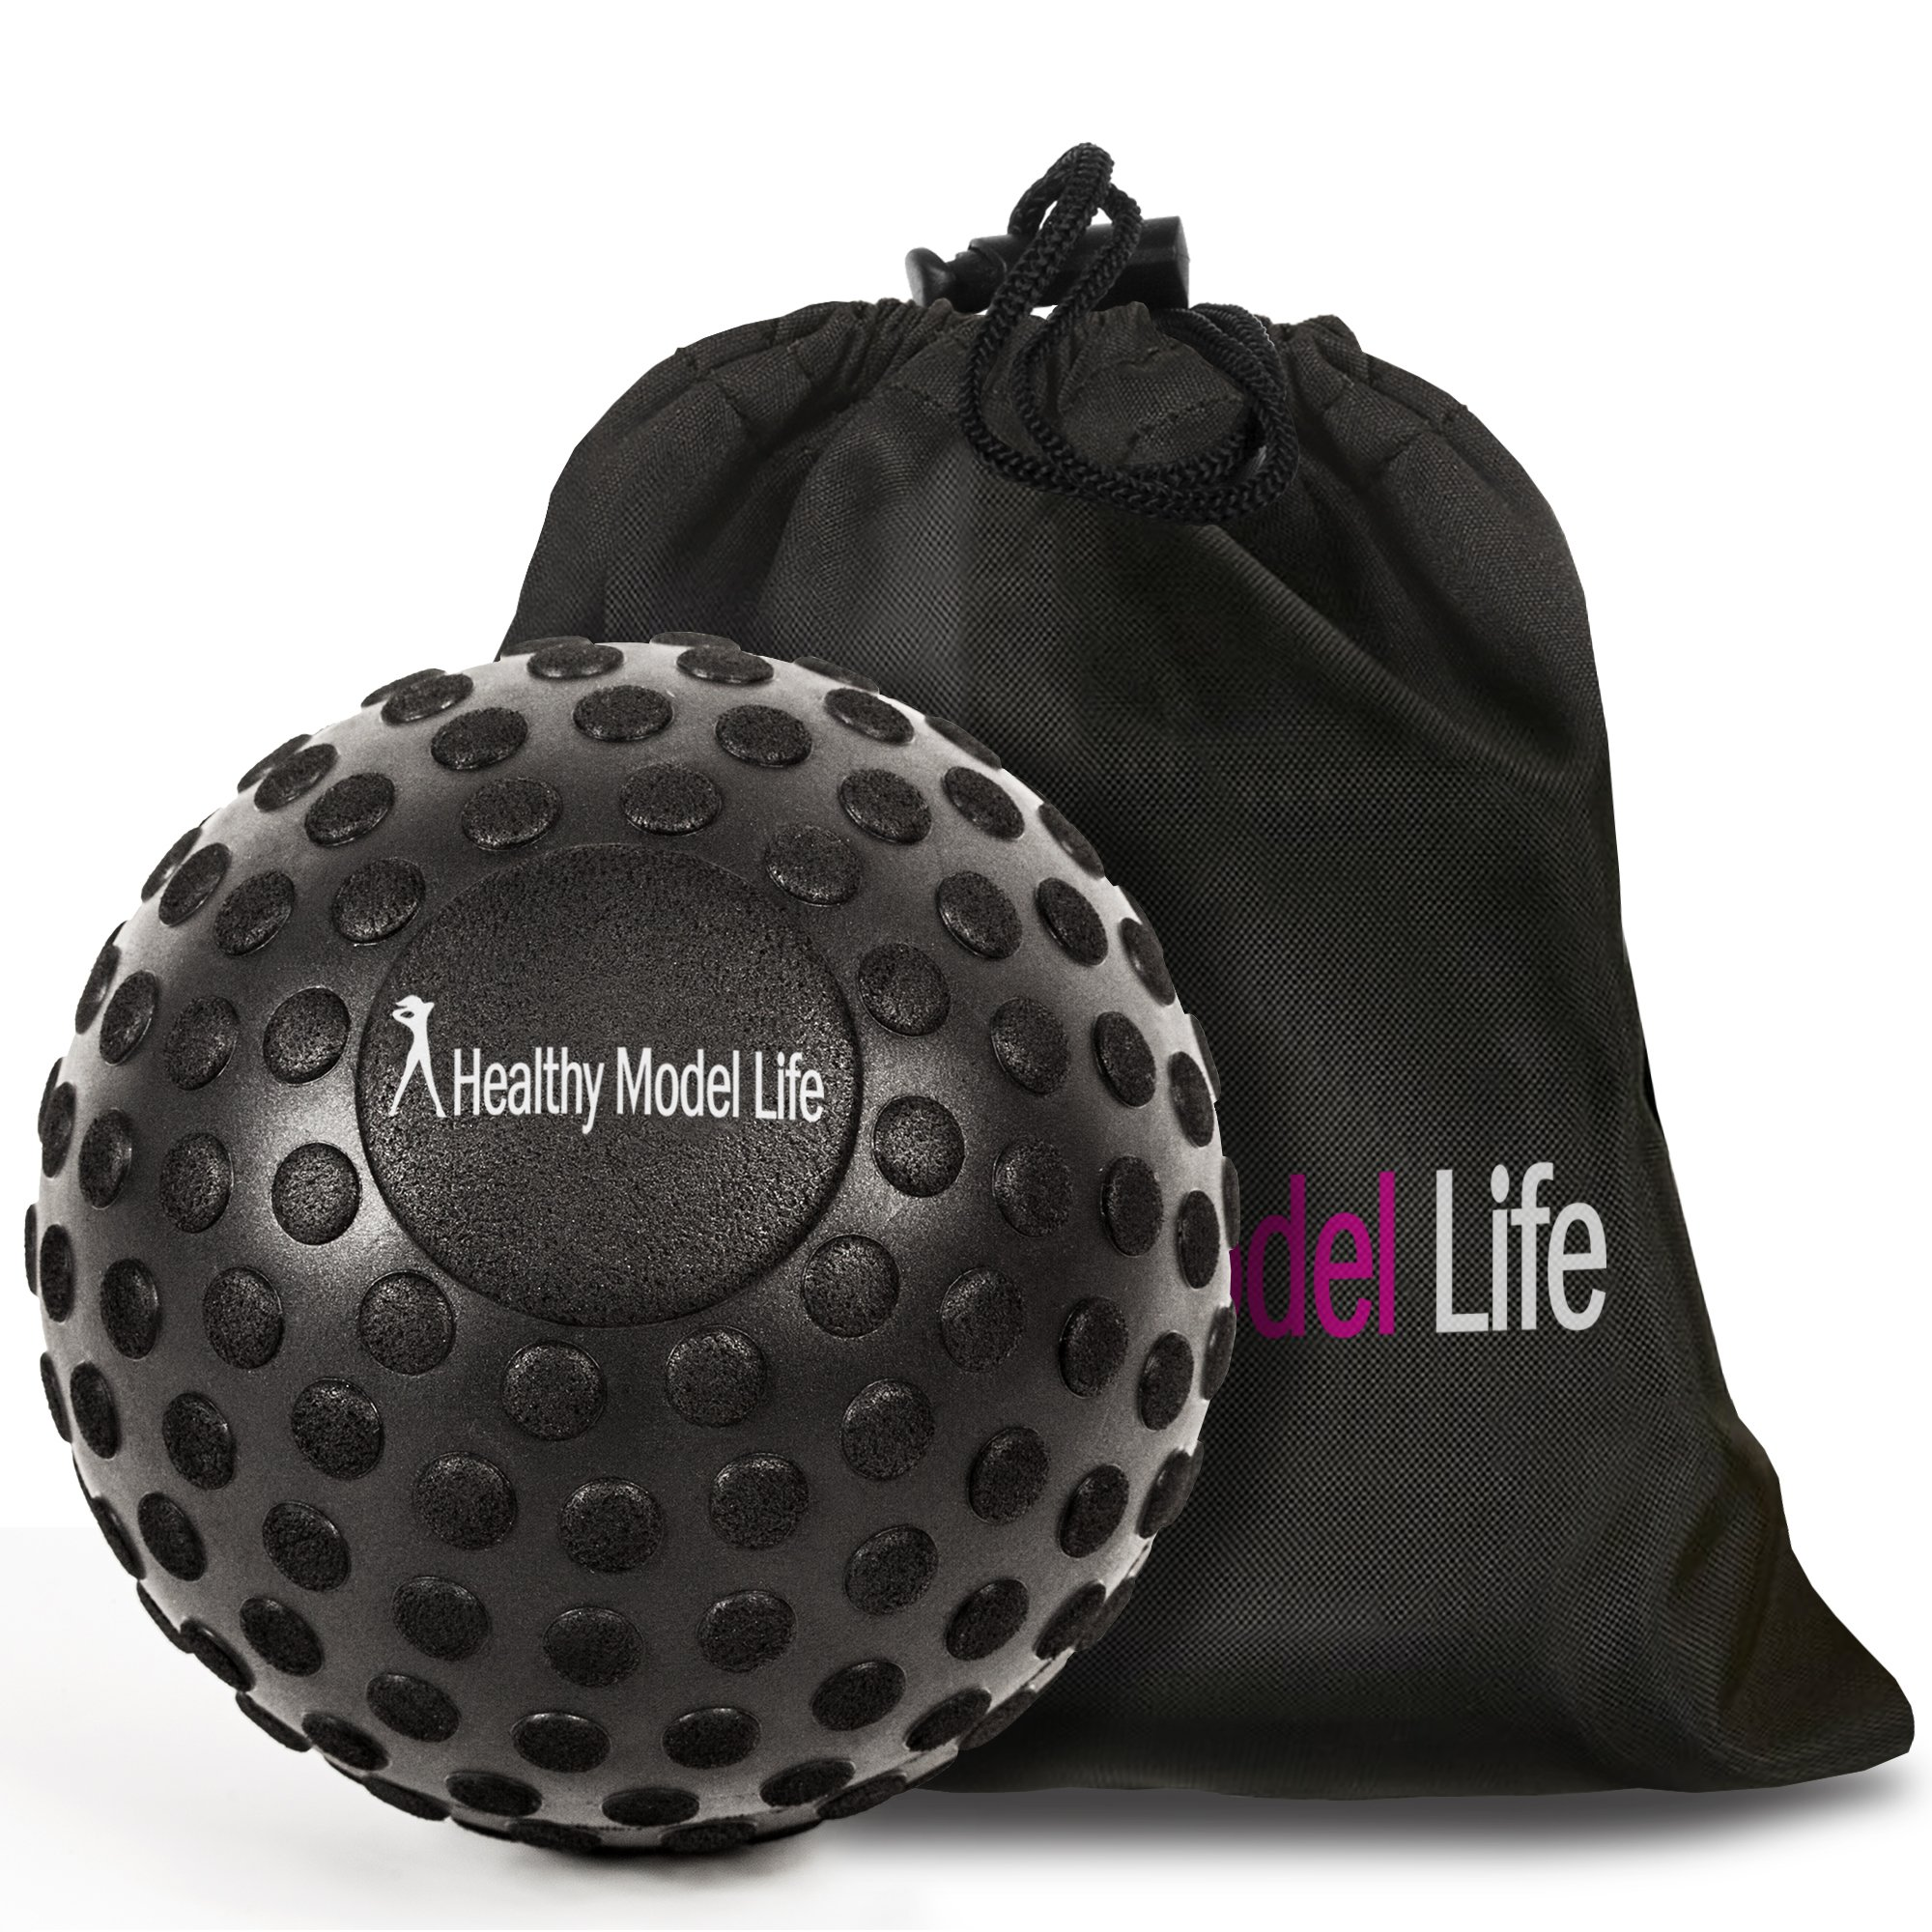 HEALTHYMODELLIFE 5'' Foam Roller Massage Ball by Healthy Model Life - Better Than Any Foam Roller For Trigger Point and Glute Release - Includes Free Carry Bag